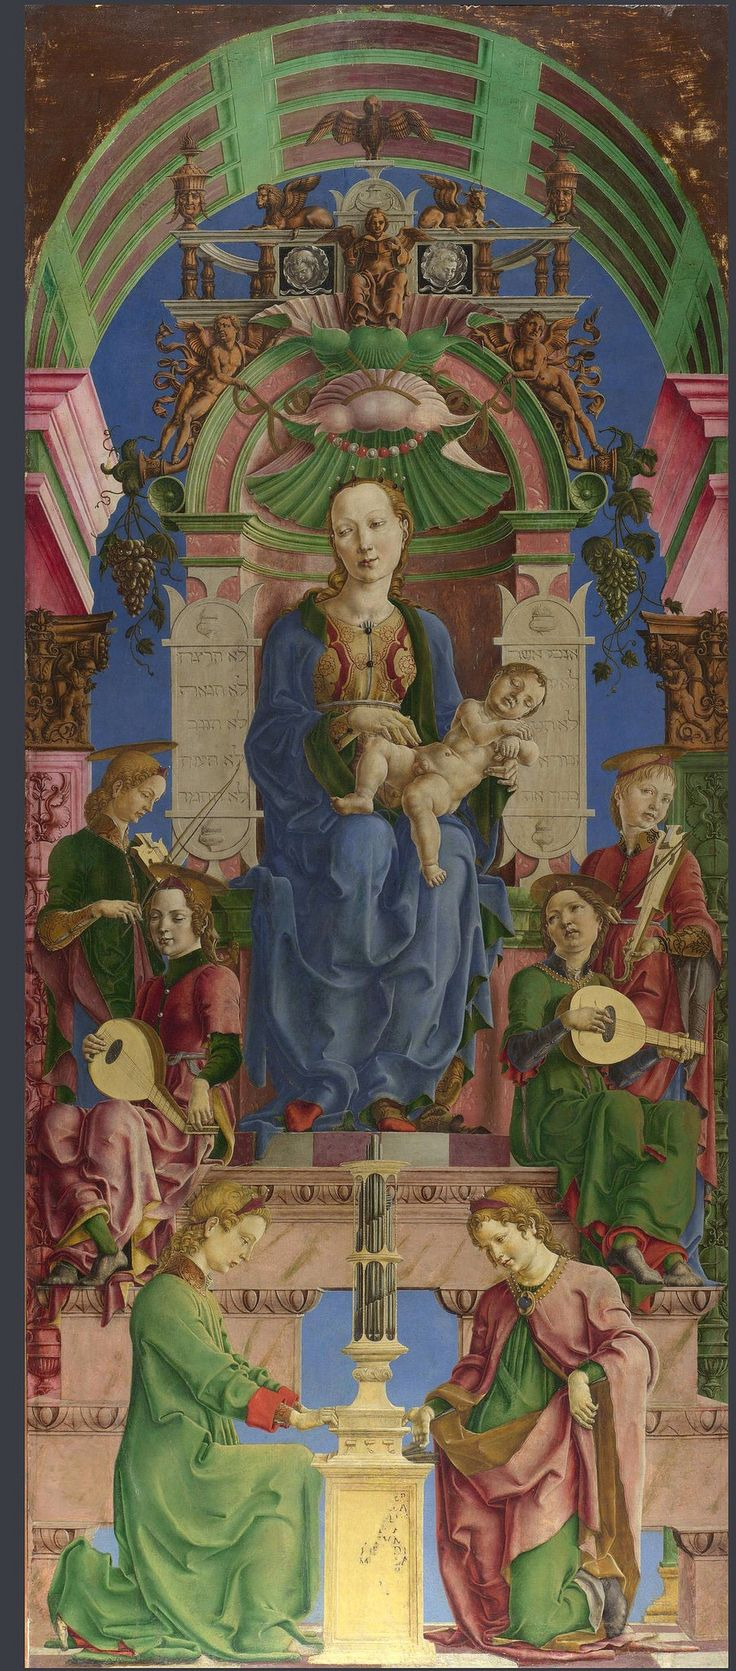 Cosimo Tura:  The Virgin and Child Enthroned  (mid-1470s)